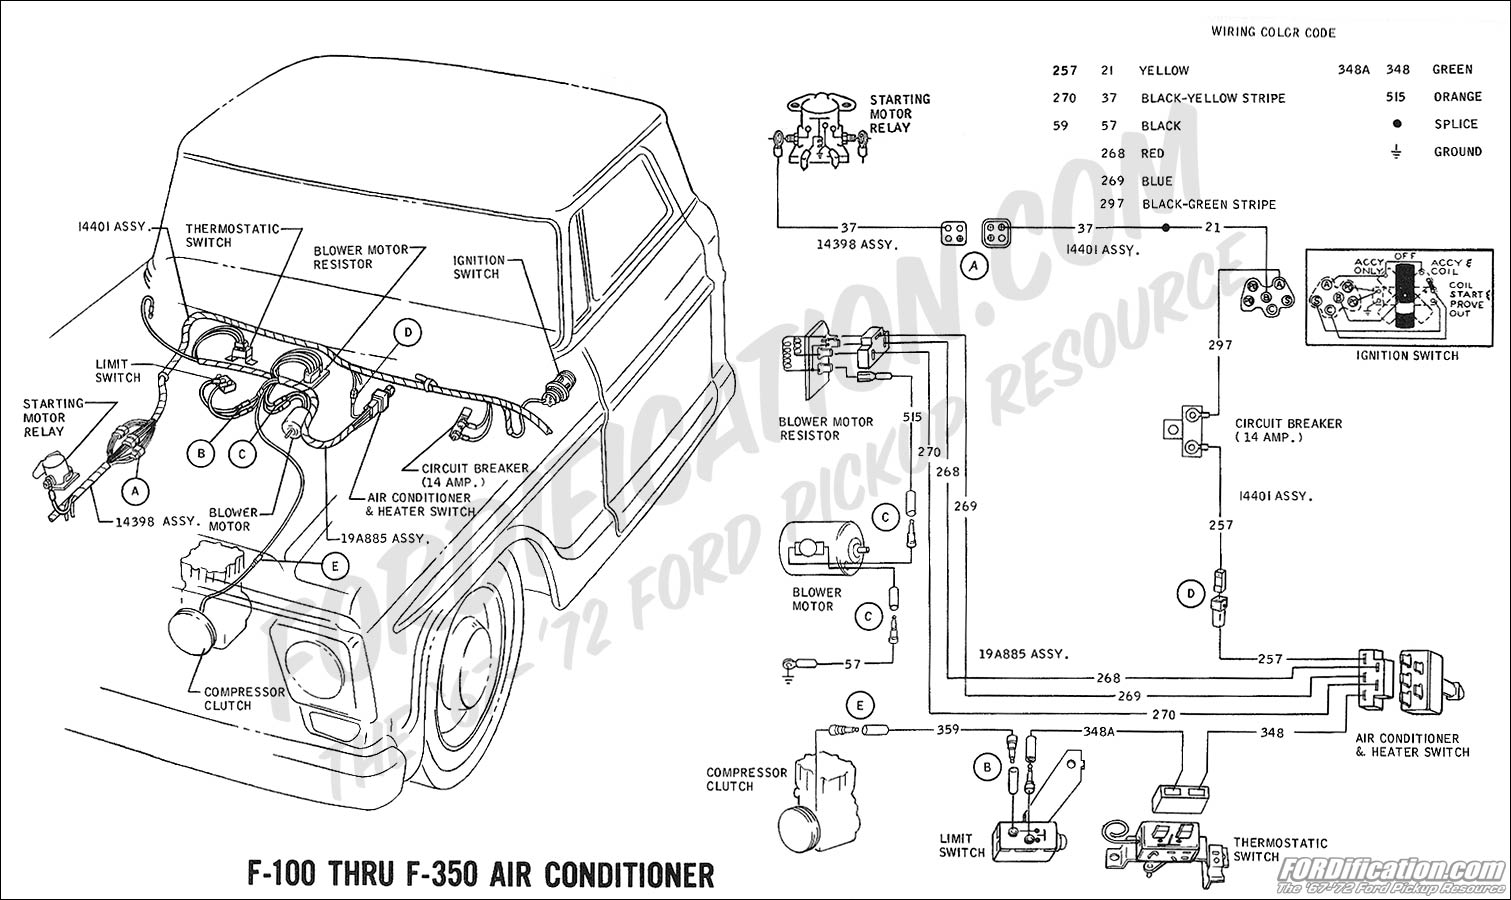 118569 Vacuum Line Diagram as well 503760 83 F150 Vapor Canister Diagrams in addition T25874887 Fuse located o2 sensor located 2002 ford likewise 7jba2 Lincoln Navigator Ultimate Air Suspension Relay additionally 1013570 Fuel Line Routing 54 F100. on 2003 ford expedition wiring diagram